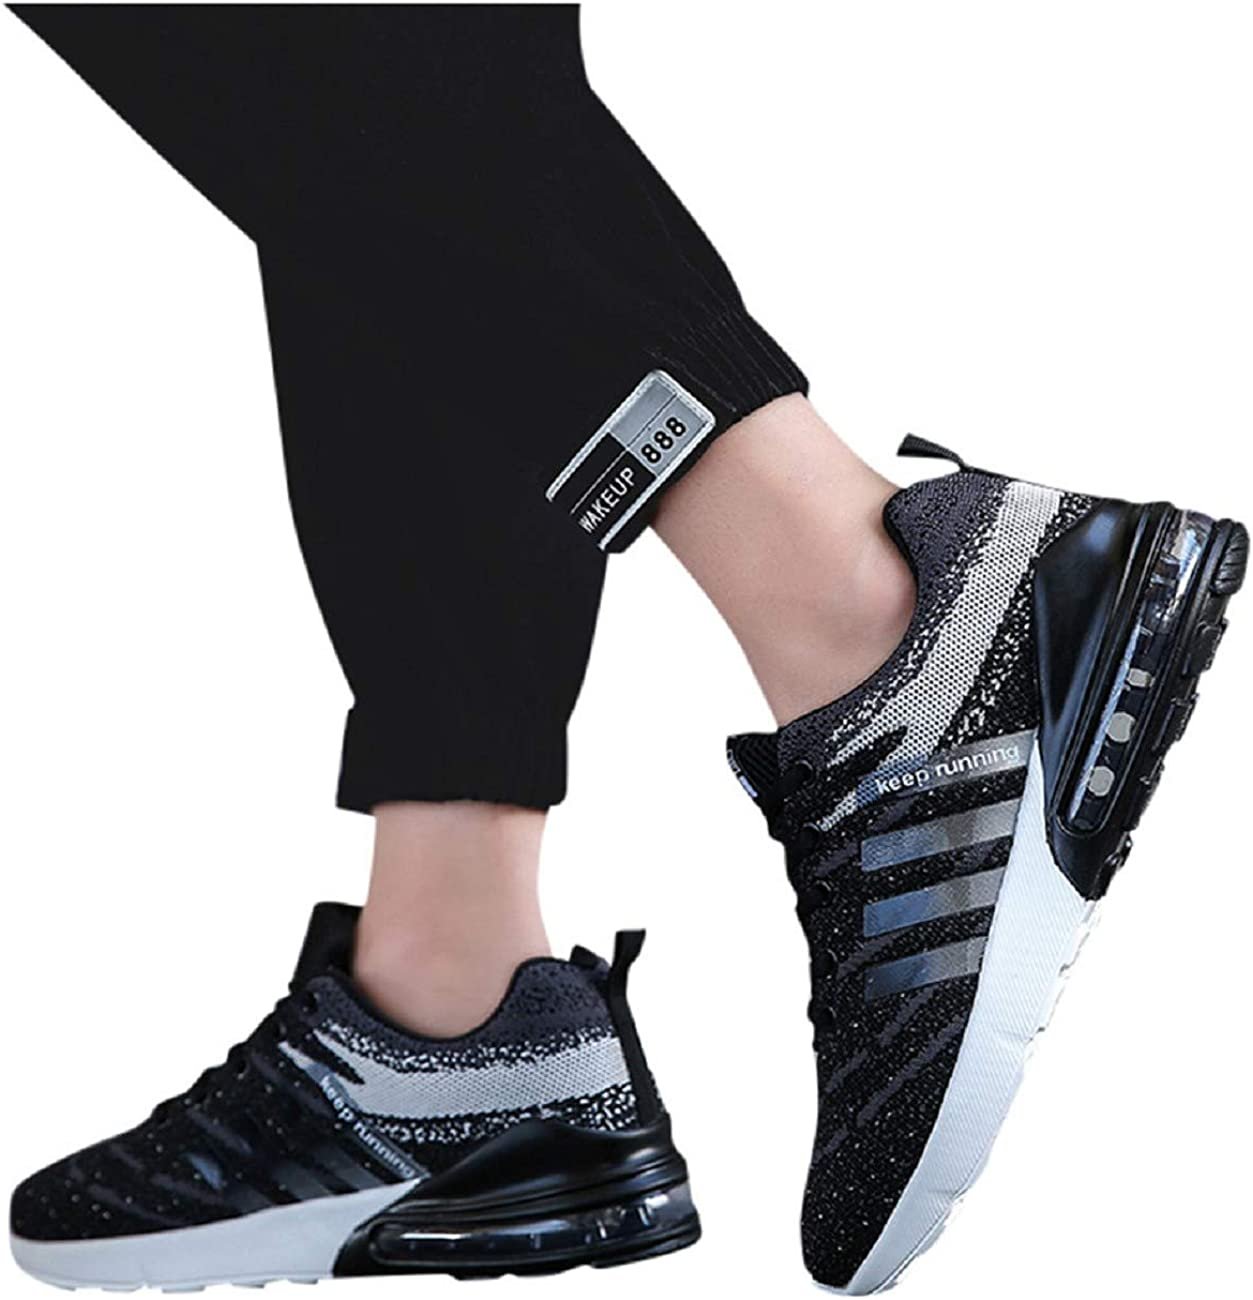 Tsmile Mens Large Size Knitted Mesh Breathable Lace Up Sneakers Fashion Comfortable Running Gym Sports Walking Shoes